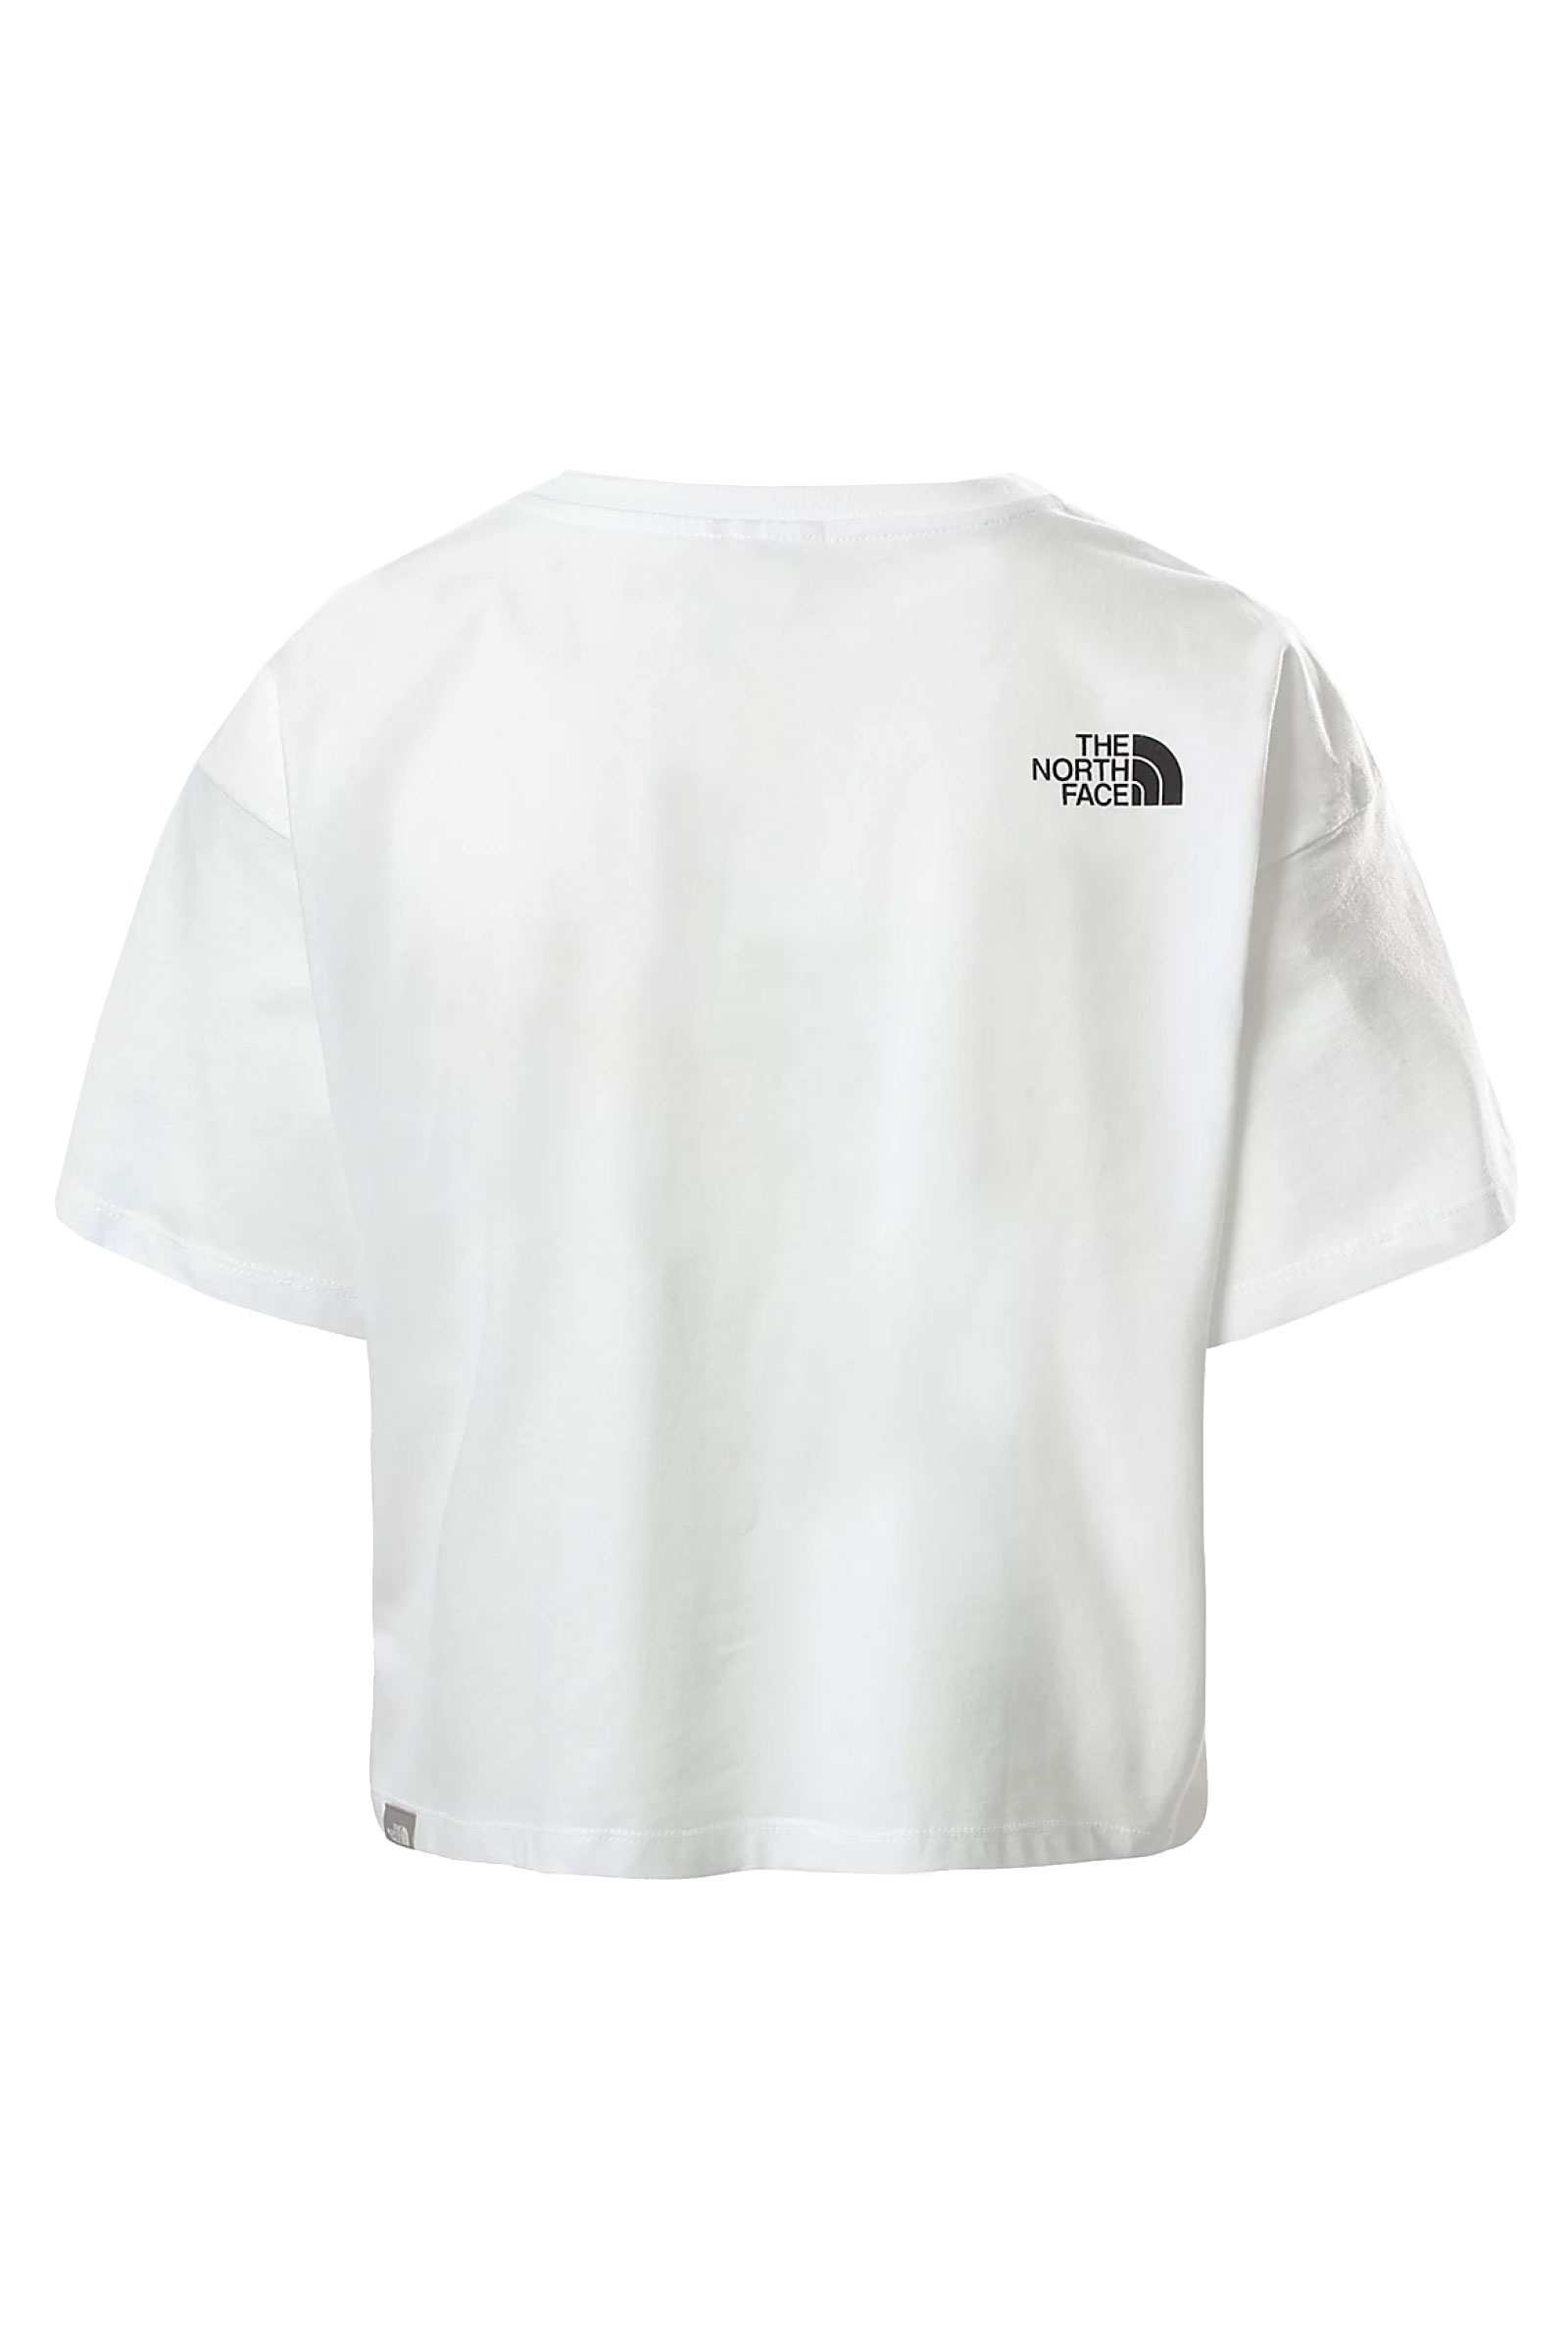 THE NORTH FACE T-Shirt Donna THE NORTH FACE | T-Shirt | NF0A4SYCFN41